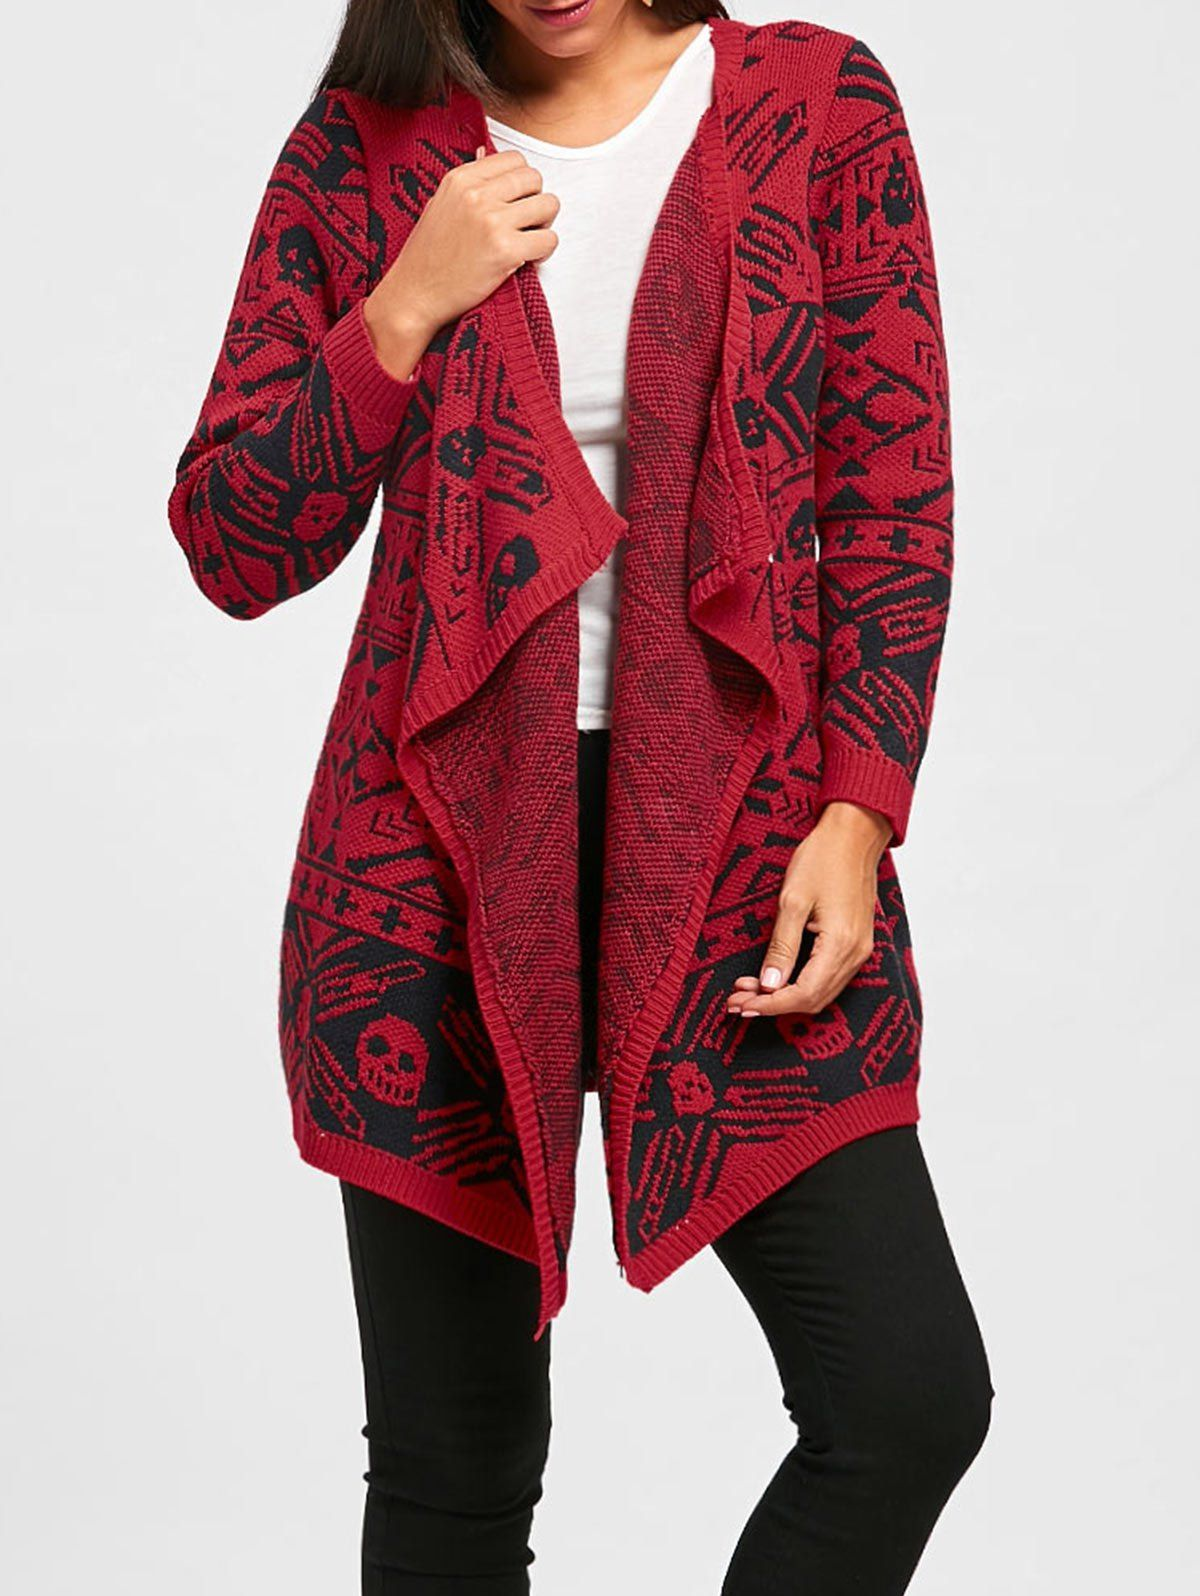 Fashionable Collarless Long Red Womens Cardigan  c0630dab7